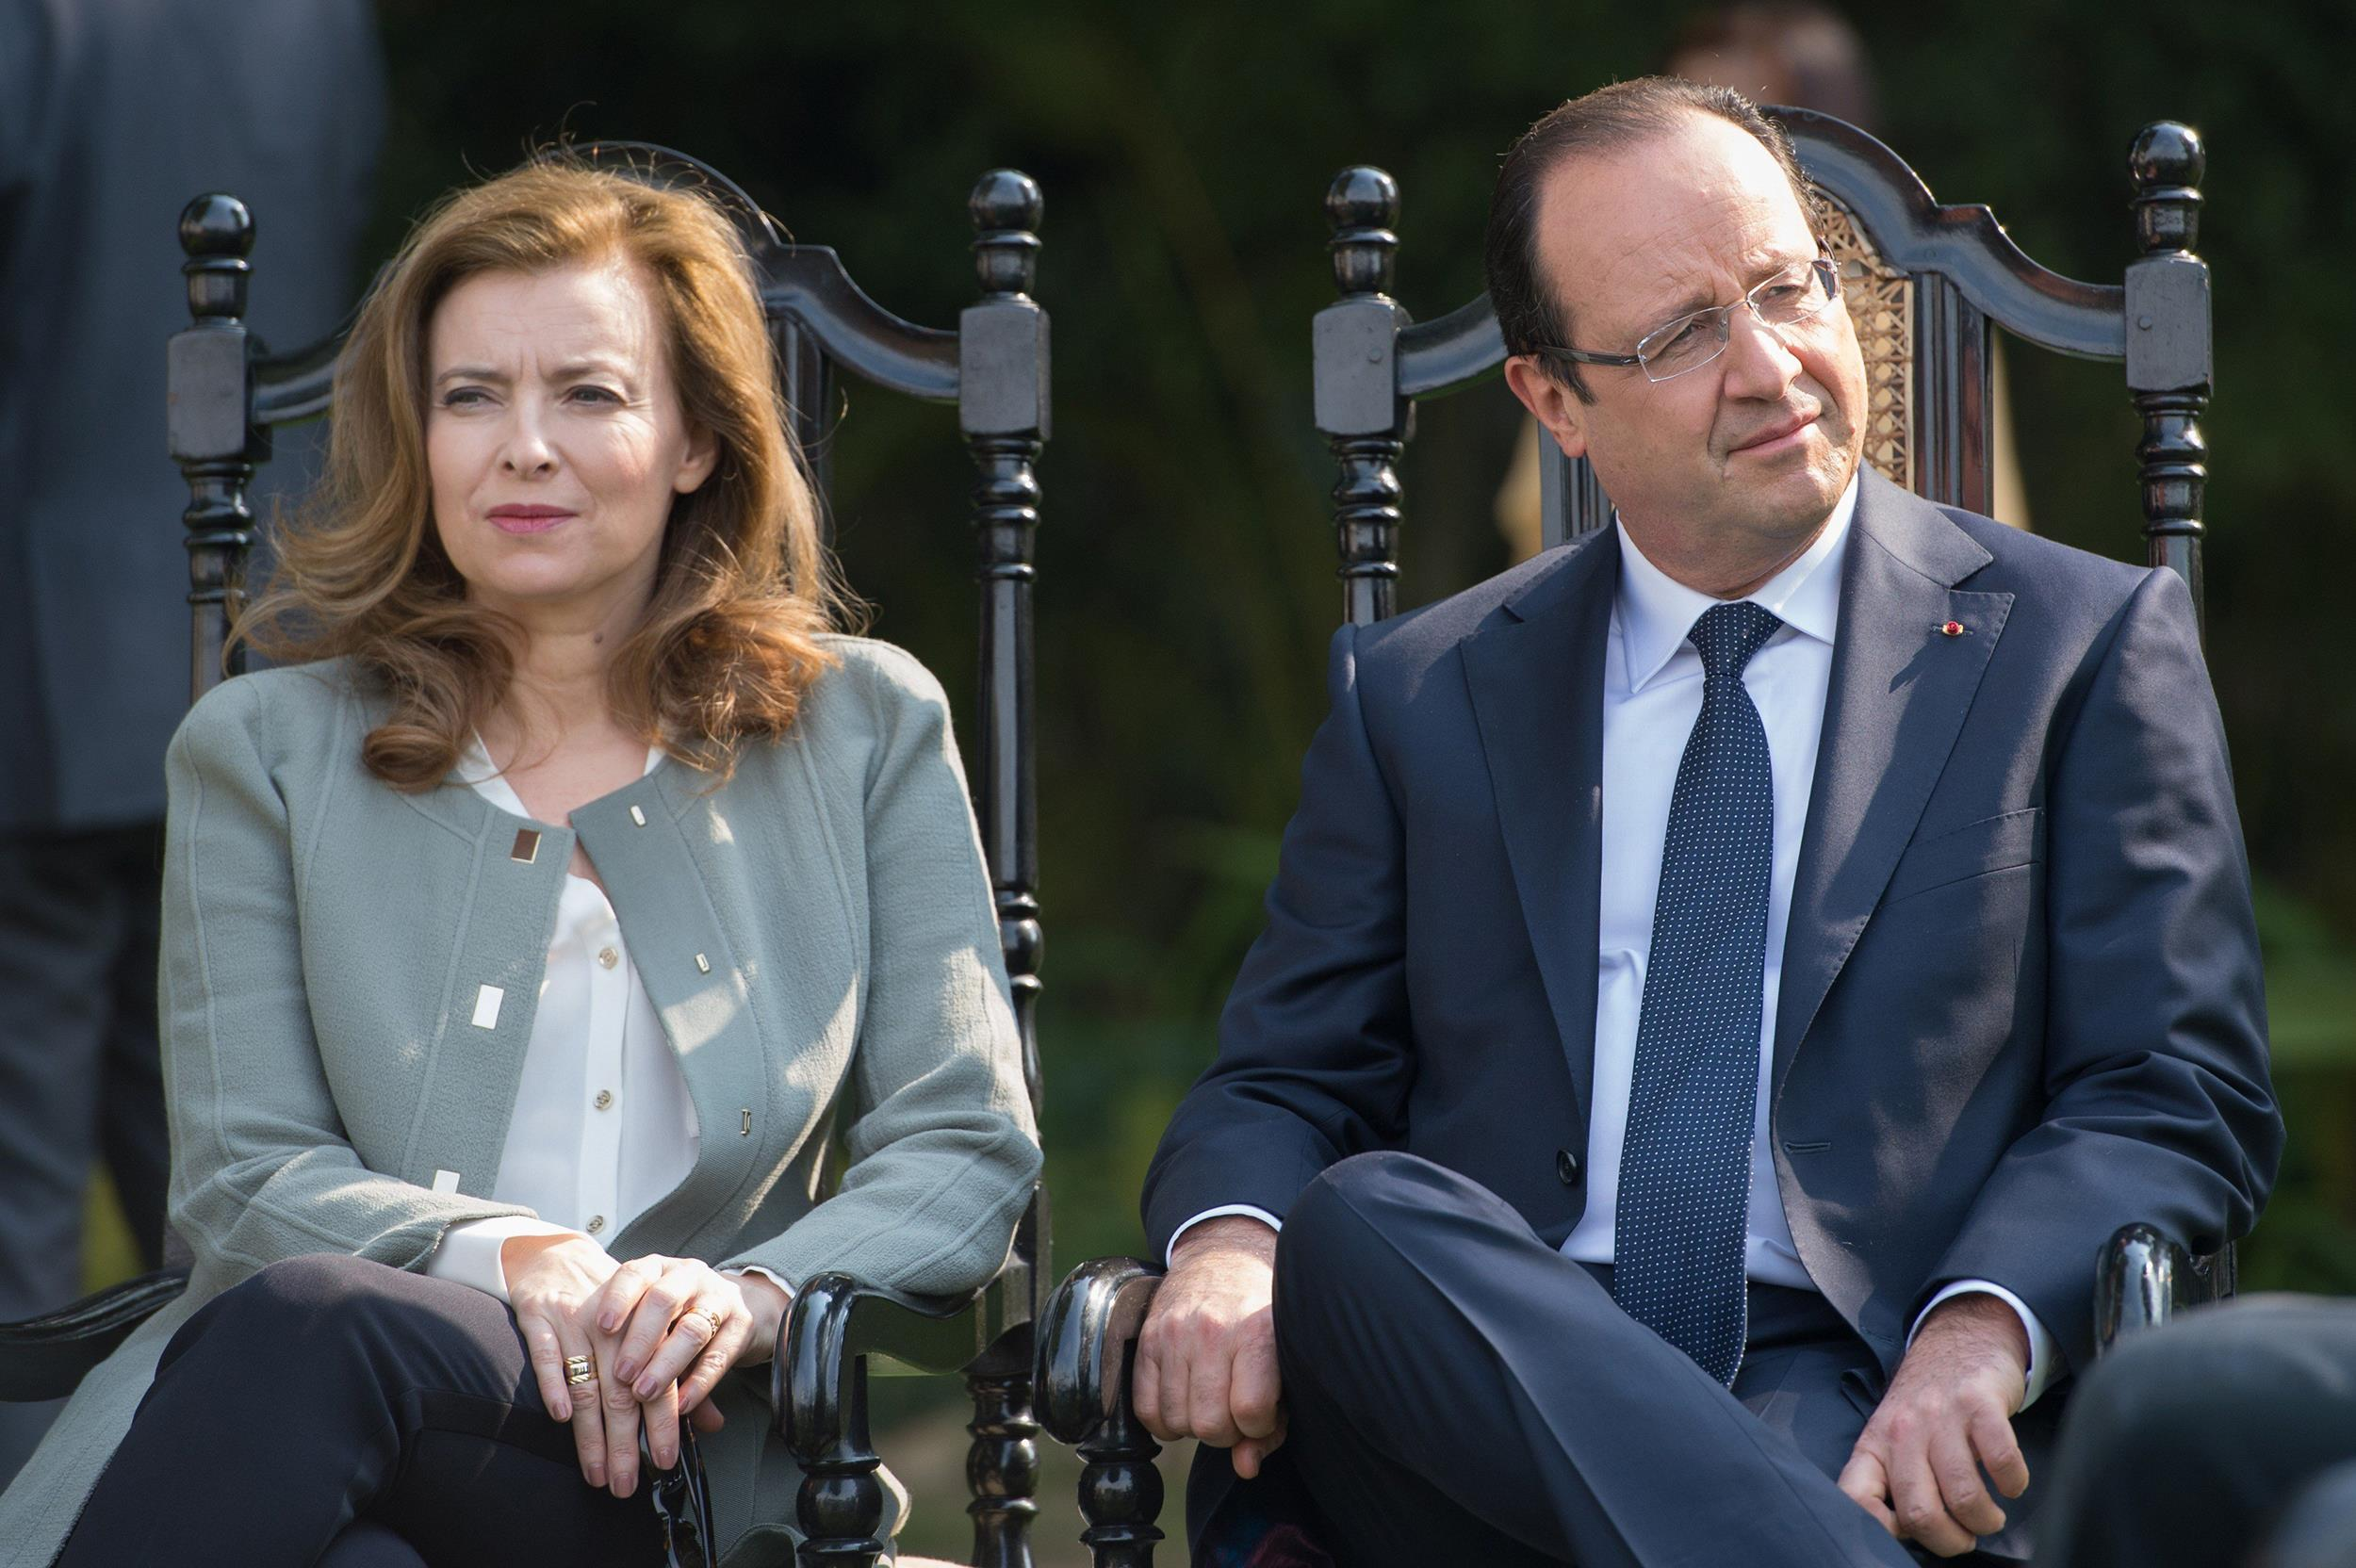 Image: France's President Francois Hollande and his partner Valerie Trierweiler at the Nehru Institute in New Delhi on Feb. 15, 2013.